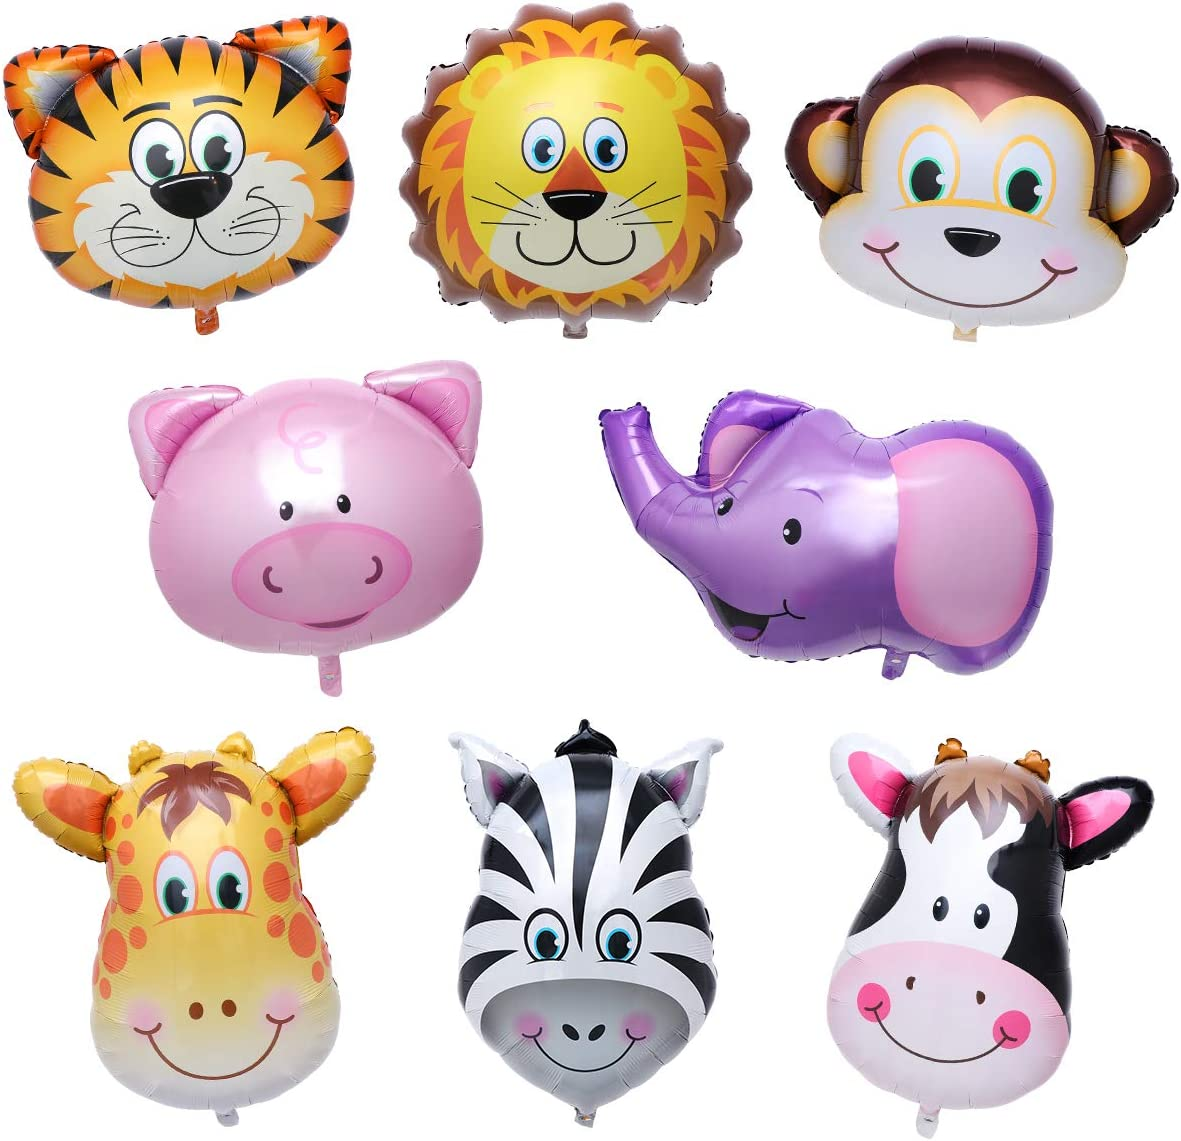 TOYMYTOY Pack of 8 Safari Animal Balloons Foil Birthday Party Decorations DOWN TO £3.09 @ Amazon